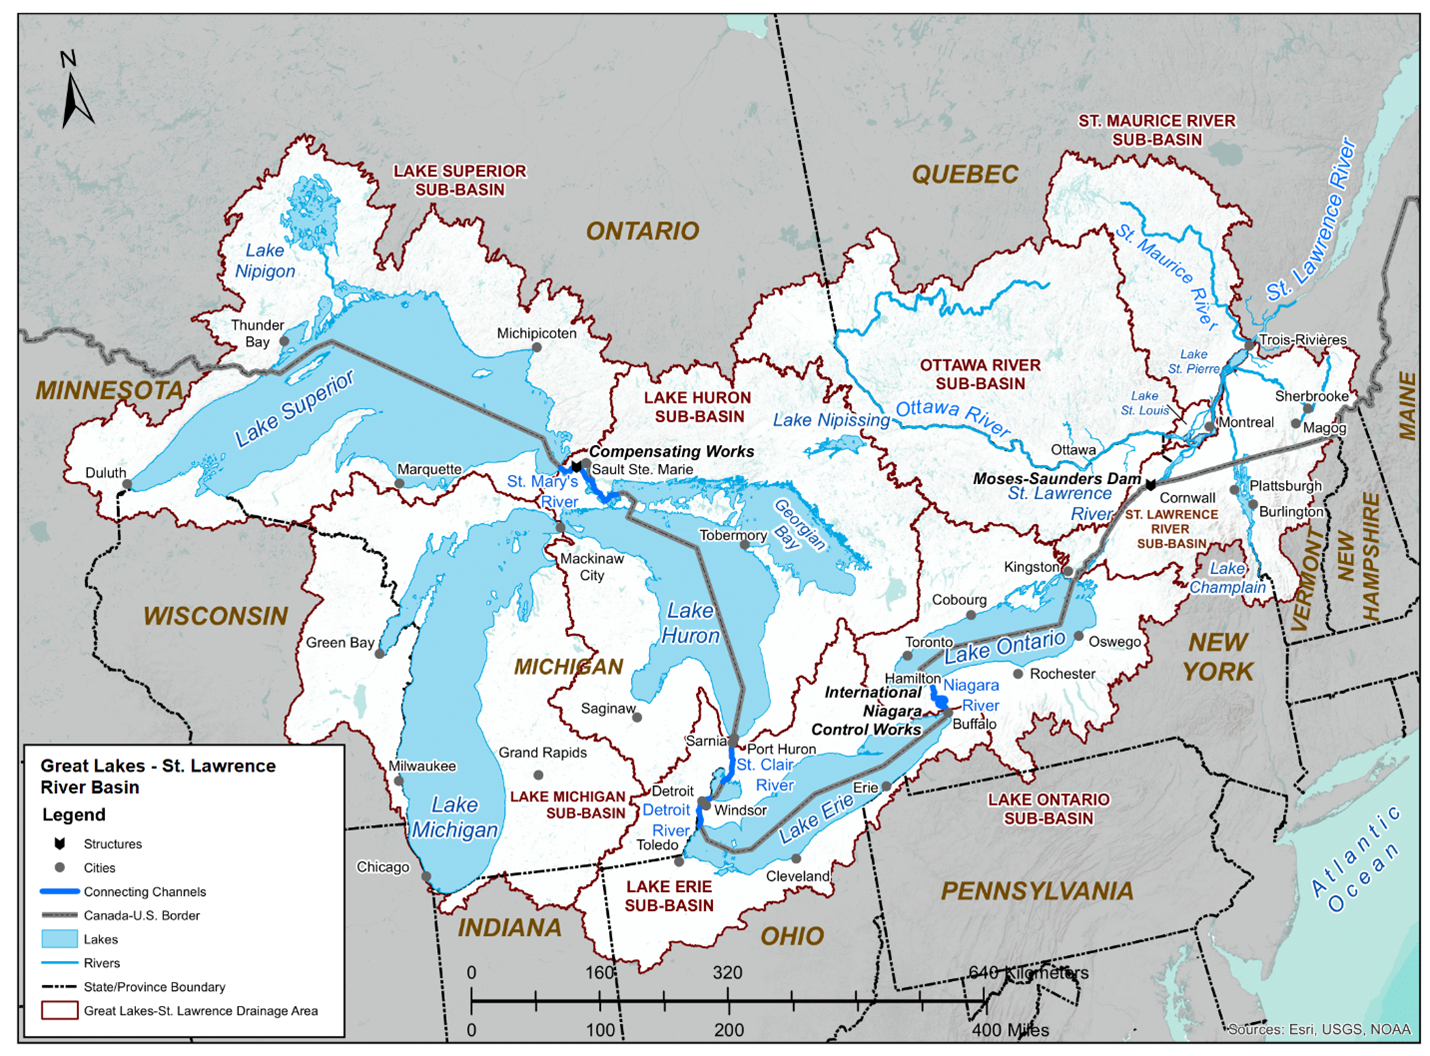 great lakes st lawrence river basin map